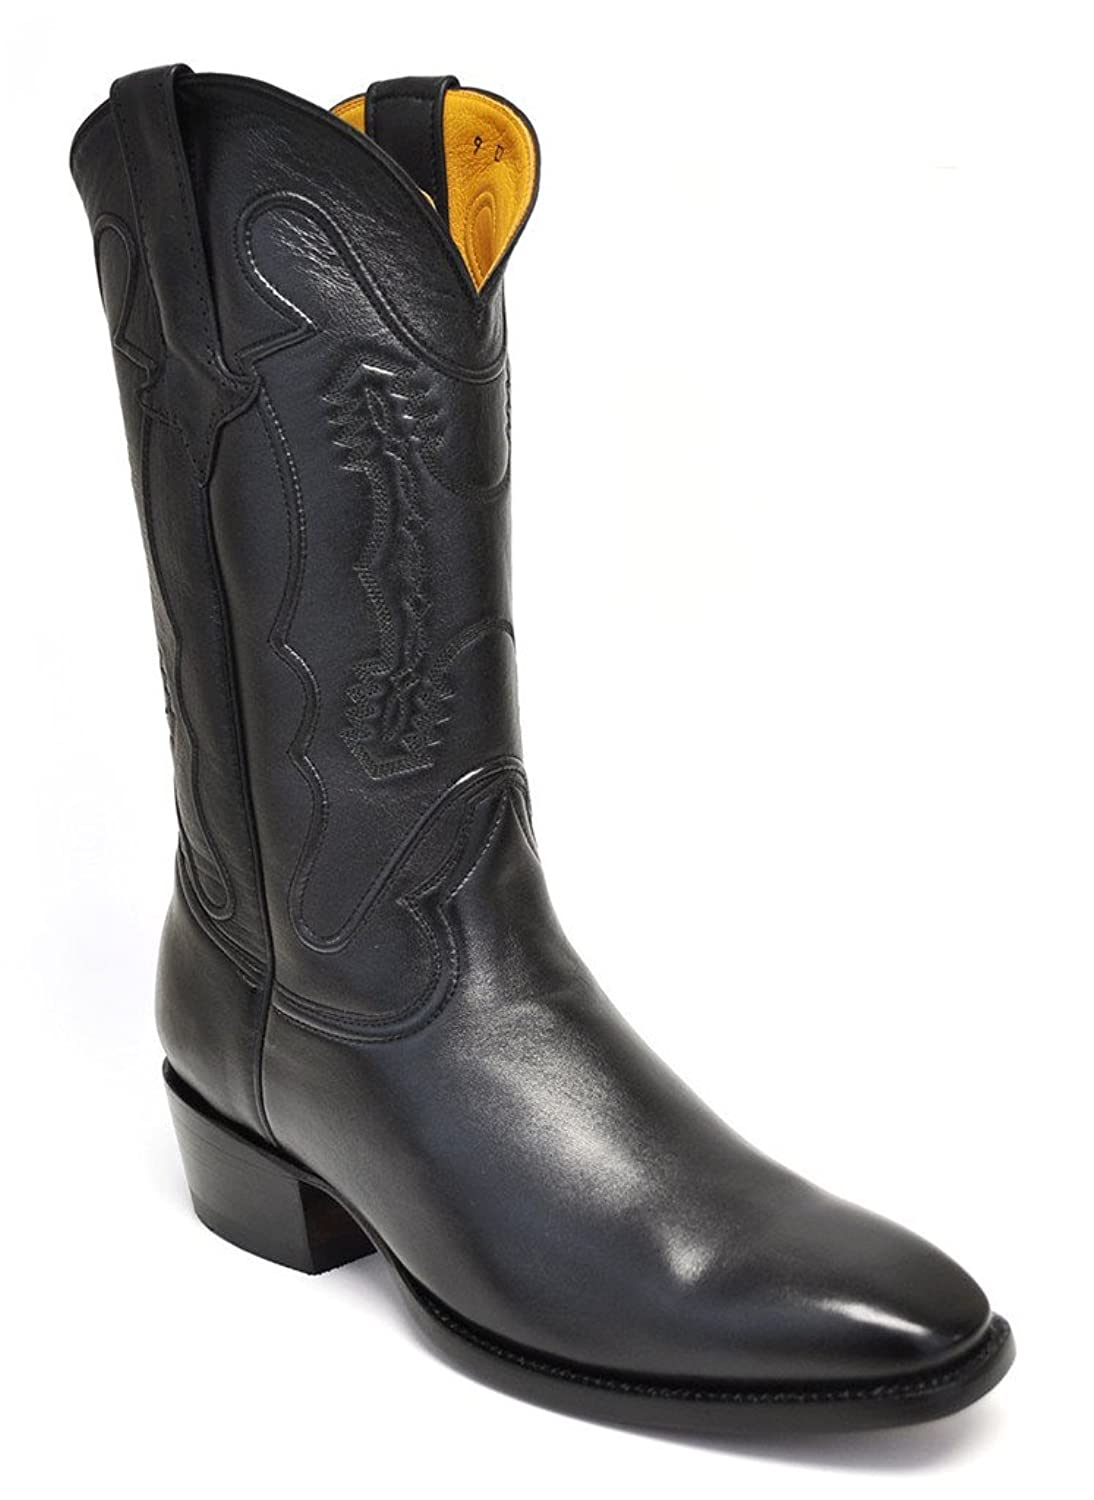 Gavel Men's Classic Handmade Black Goatskin French Toe Cowboy Boot